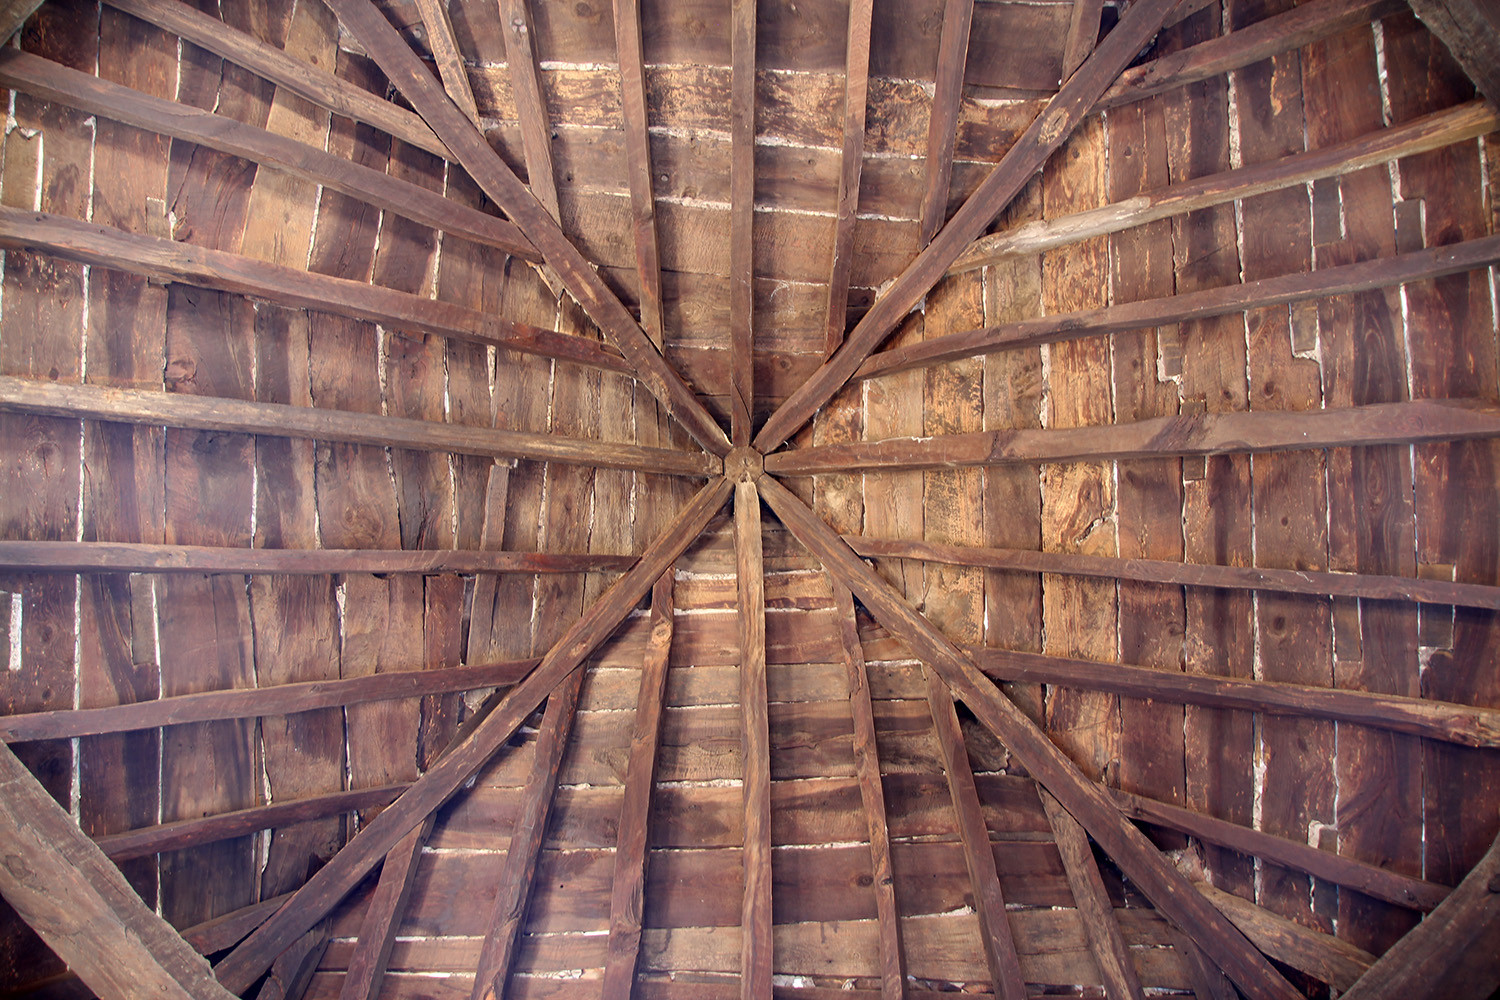 The ceiling of the tower room